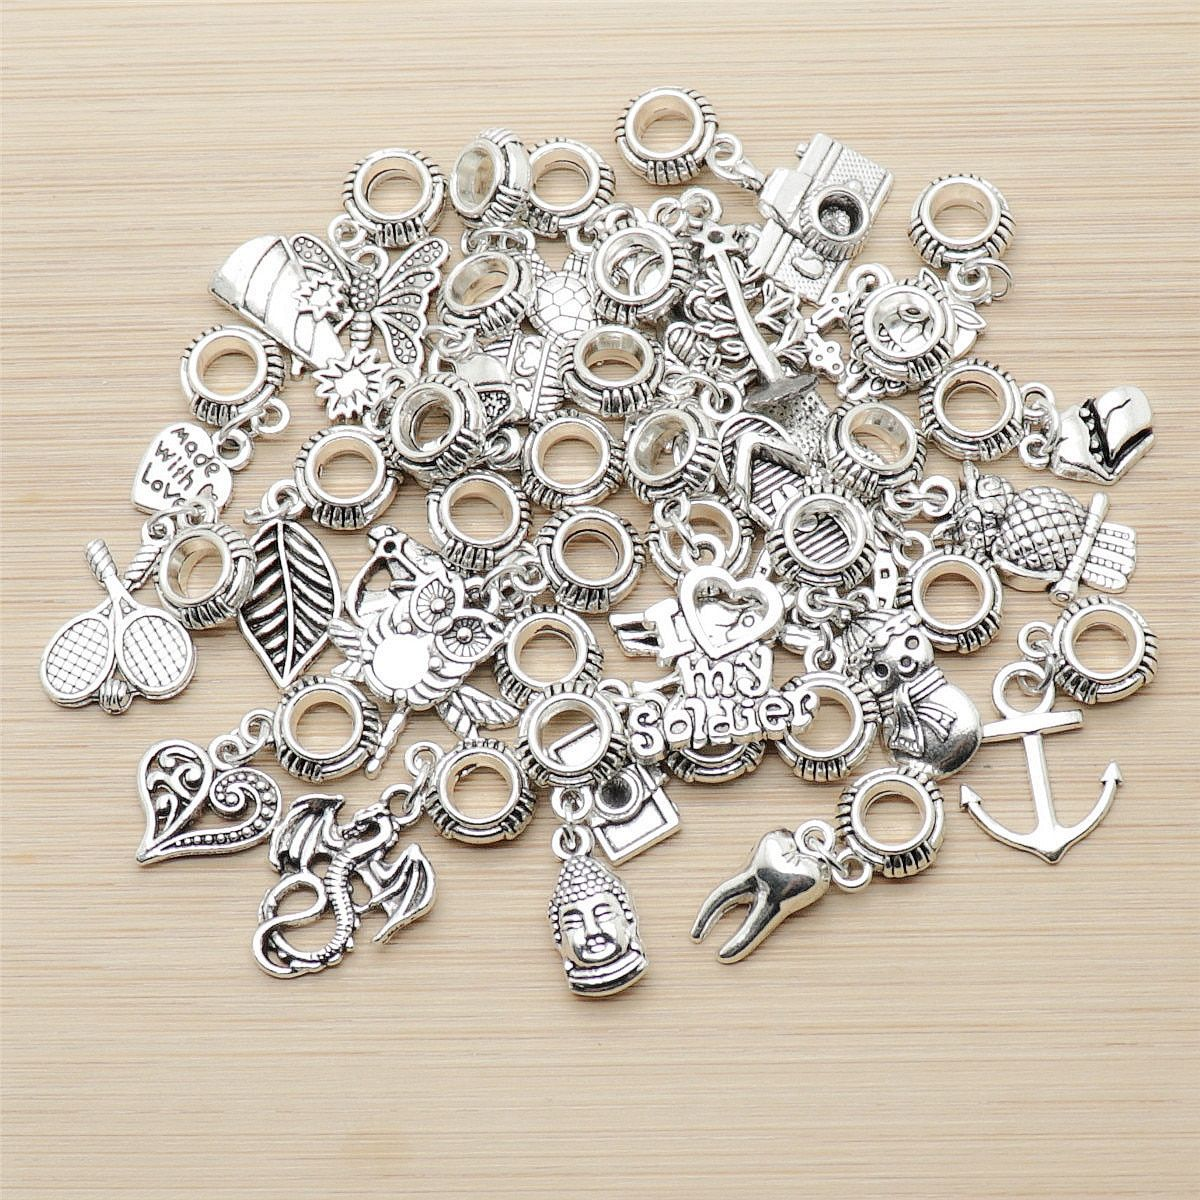 Random mix 30pcs Ancient silver Big hole loose beads fit Pandora charm bracelet DIY pendant jewelry making